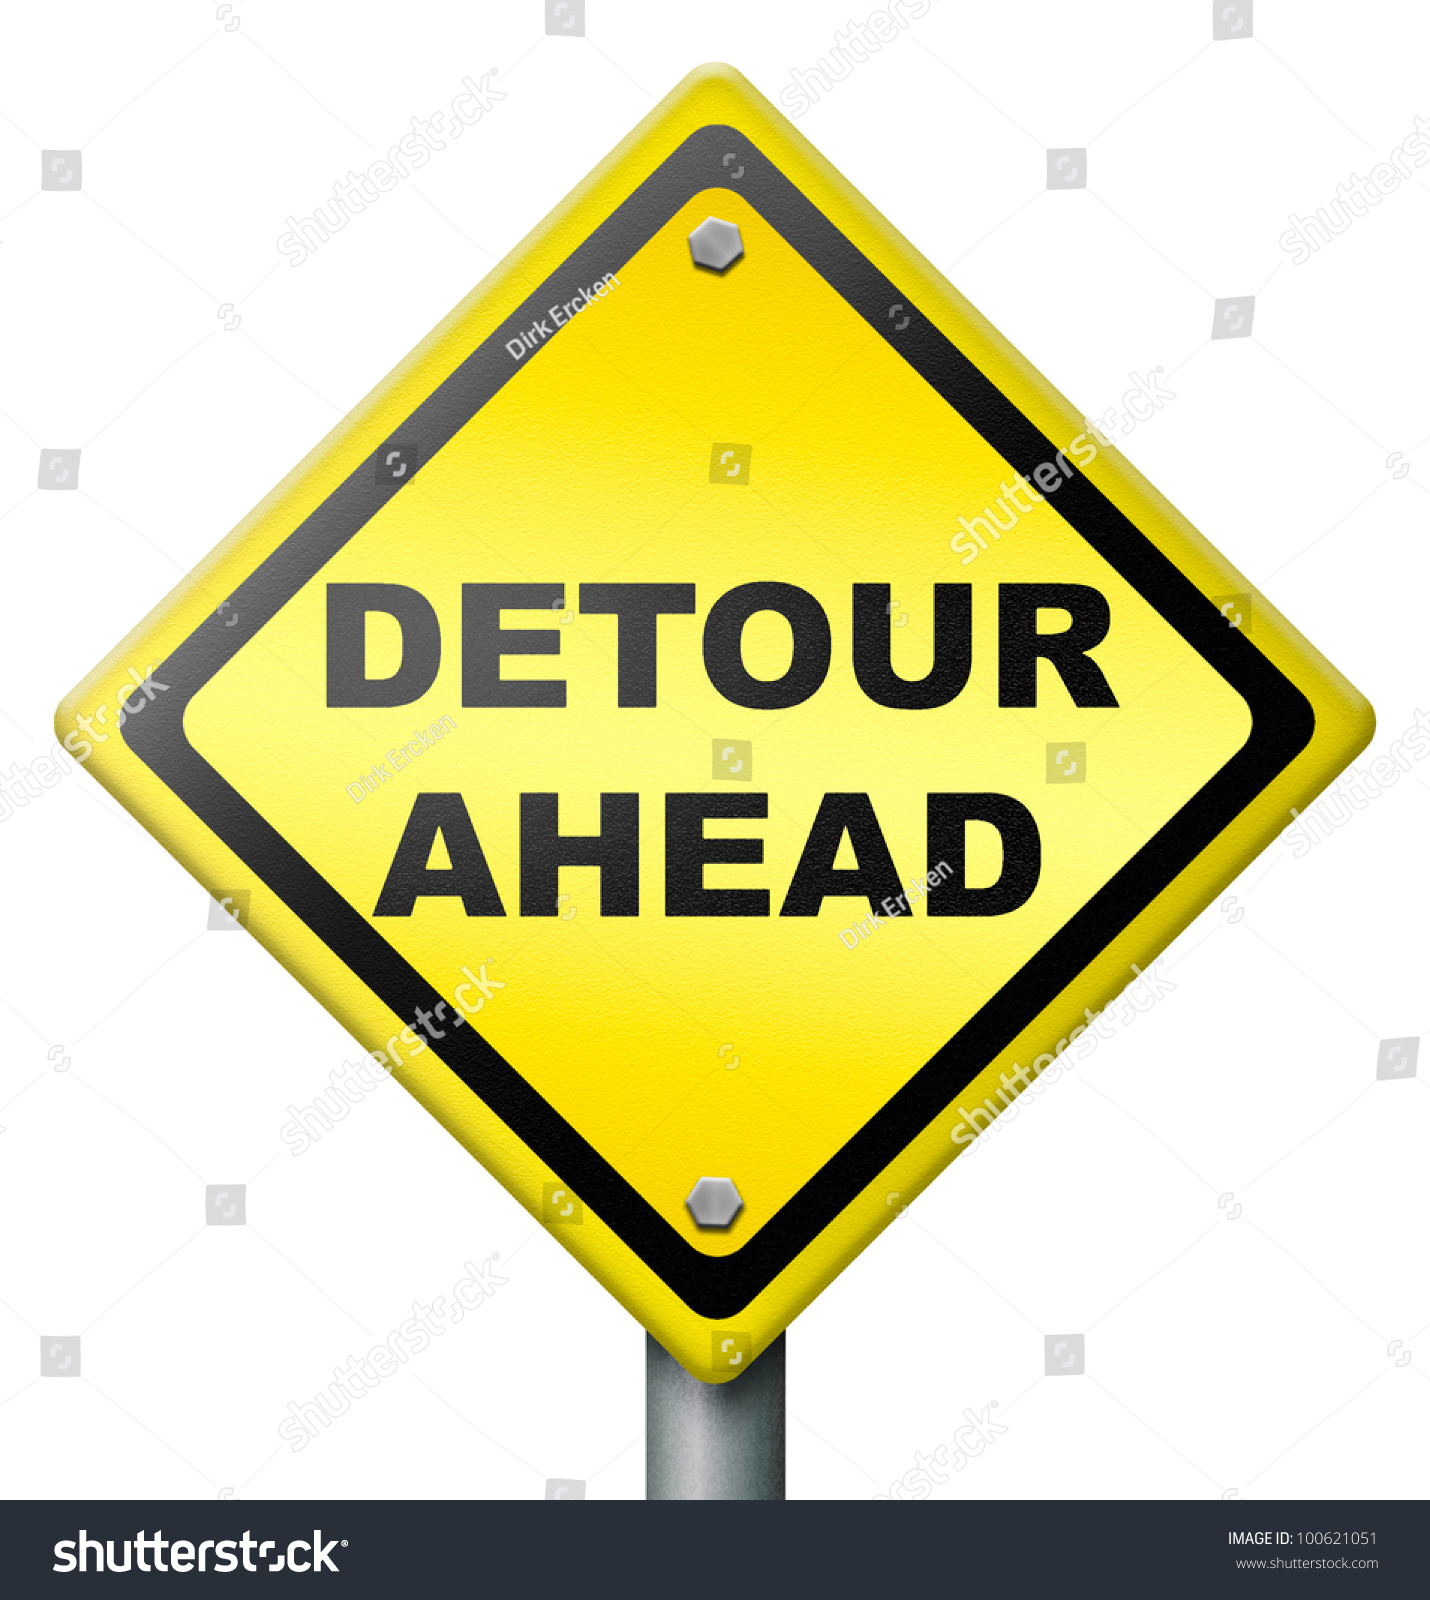 Problem Yellow Warning Sign Caution Trouble Issue Stock: Detour Ahead Road Block Traffic Problem, Yellow Road Sign